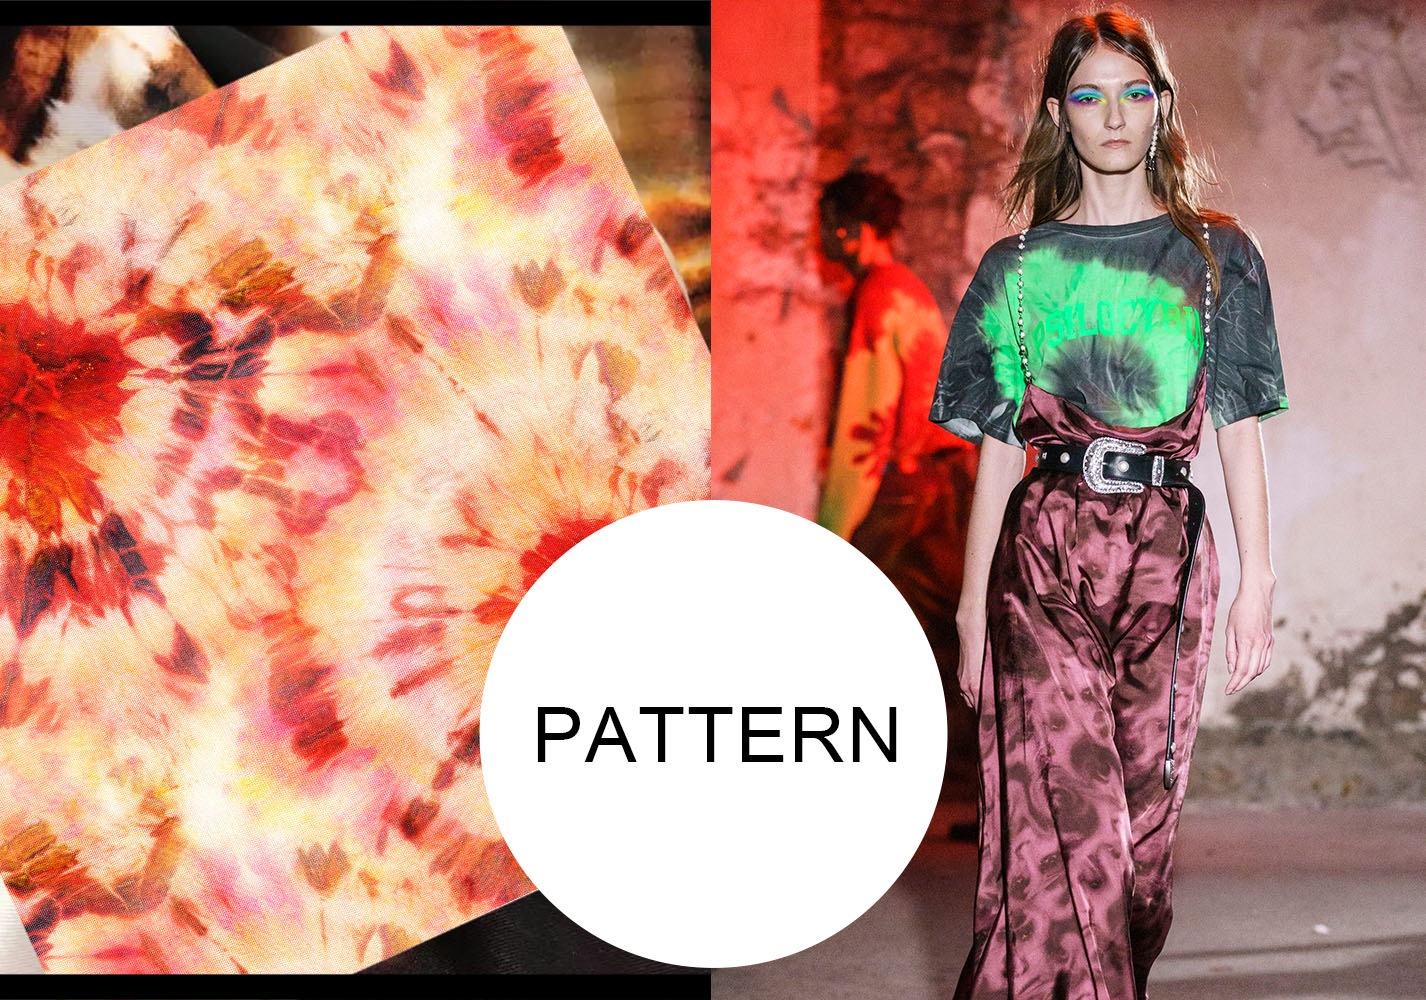 Tie Dyeing -- S/S 2020 Pattern Trend for Womenswear